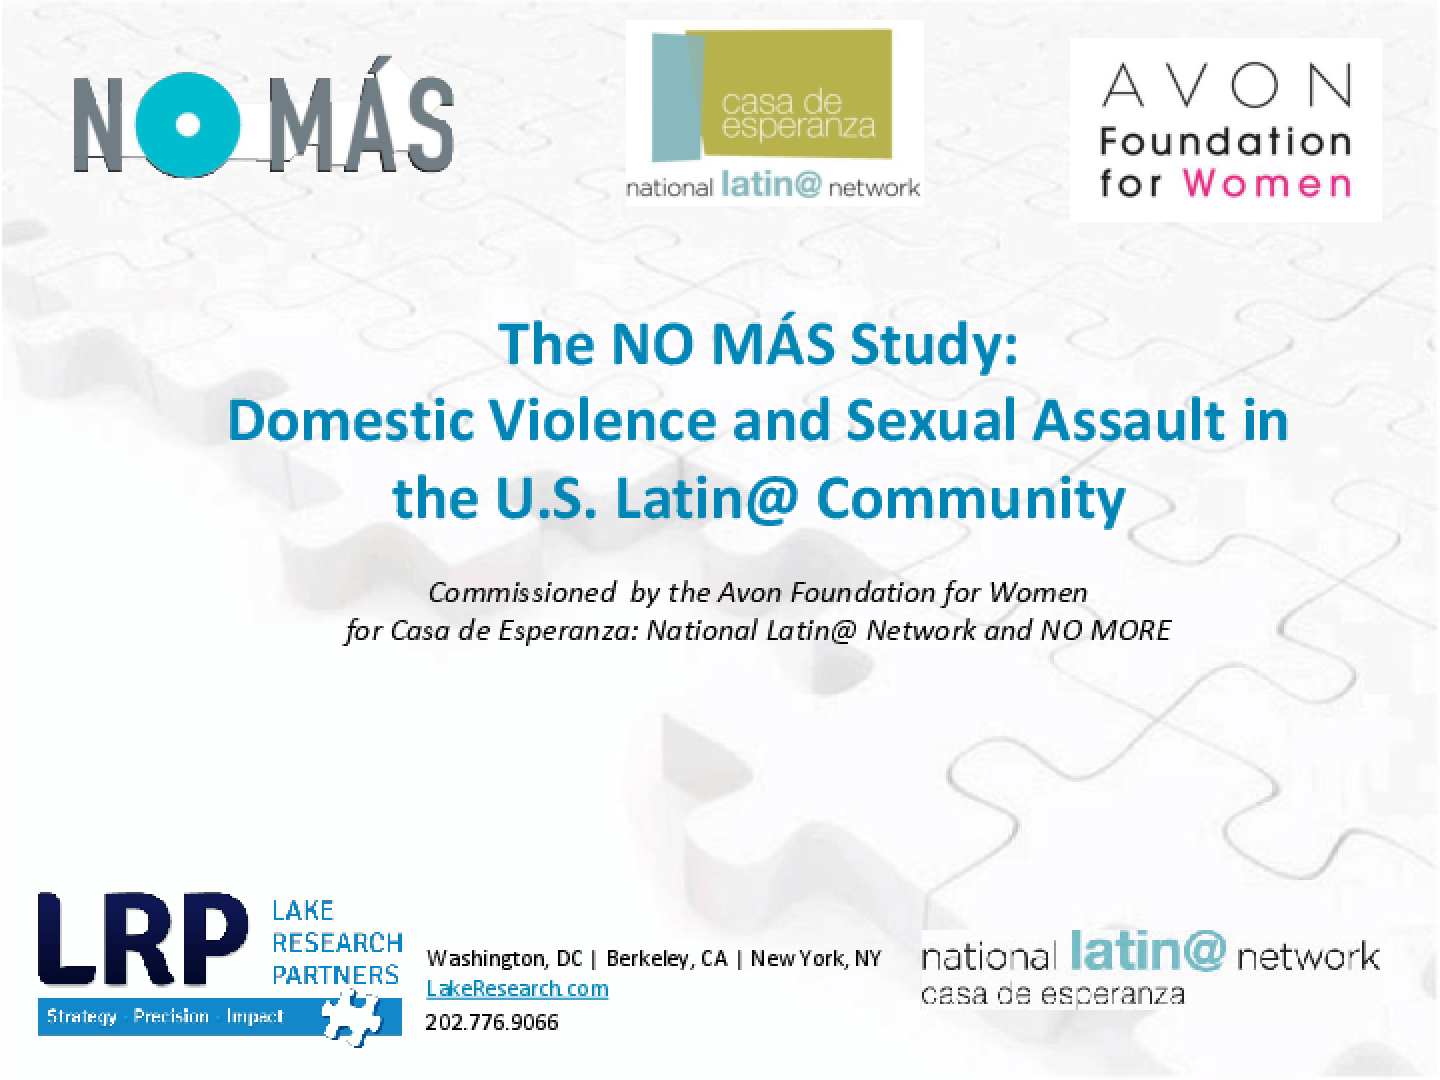 The NO MÁS Study: Domestic Violence and Sexual Assault in the U.S. Latin@ Community